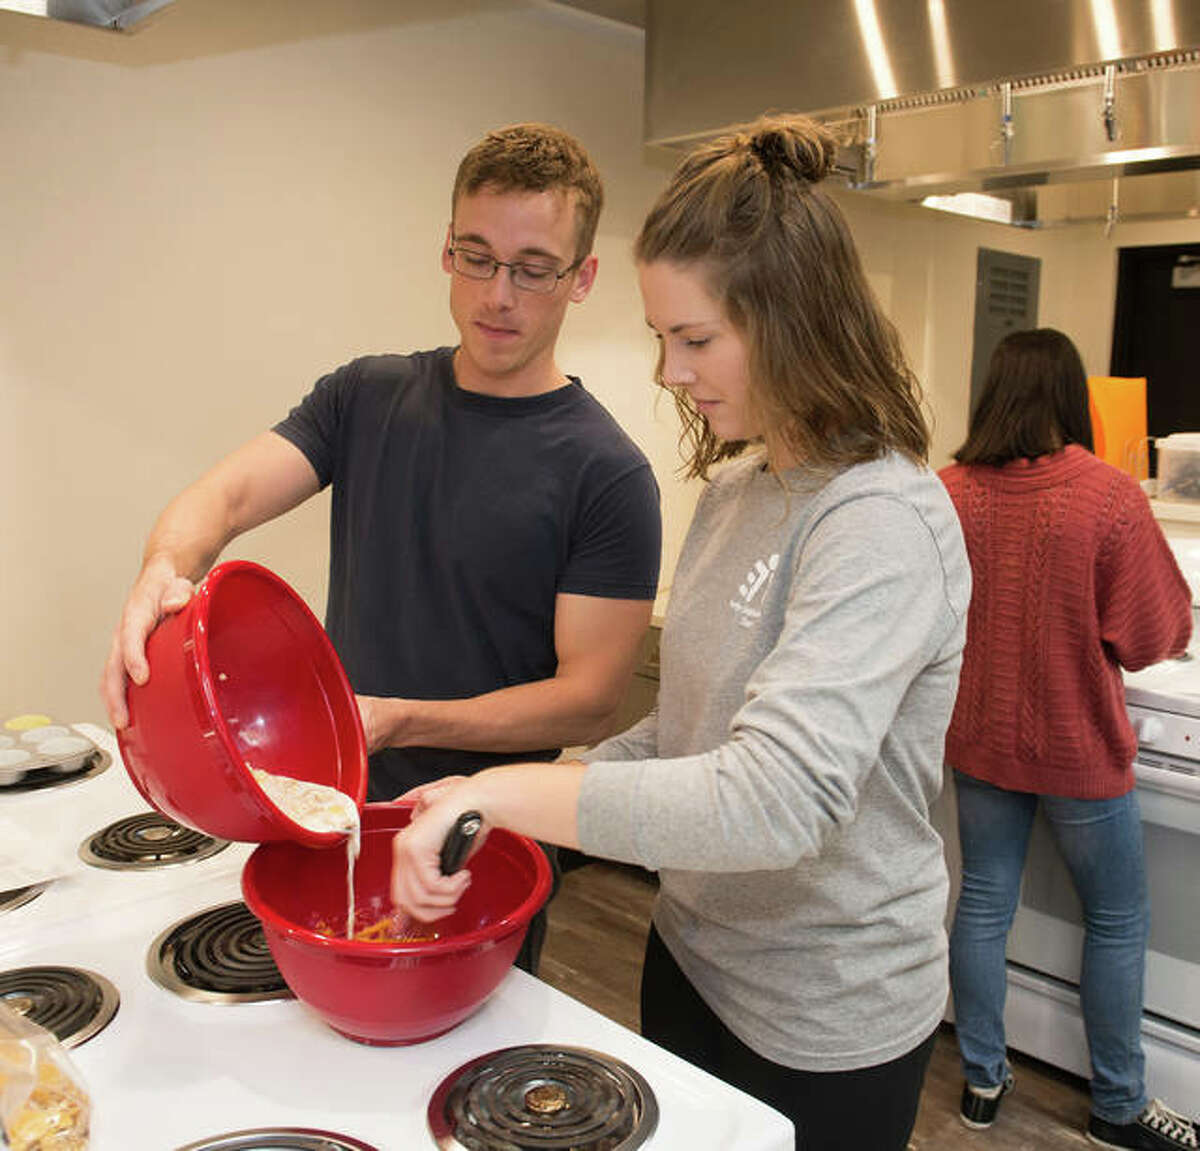 Students Eric Bonacorsi, left, and Alissa Apke during a class in the SIUE Nutrition Laboratory Fueled by the Oberweis Family in November 2017.